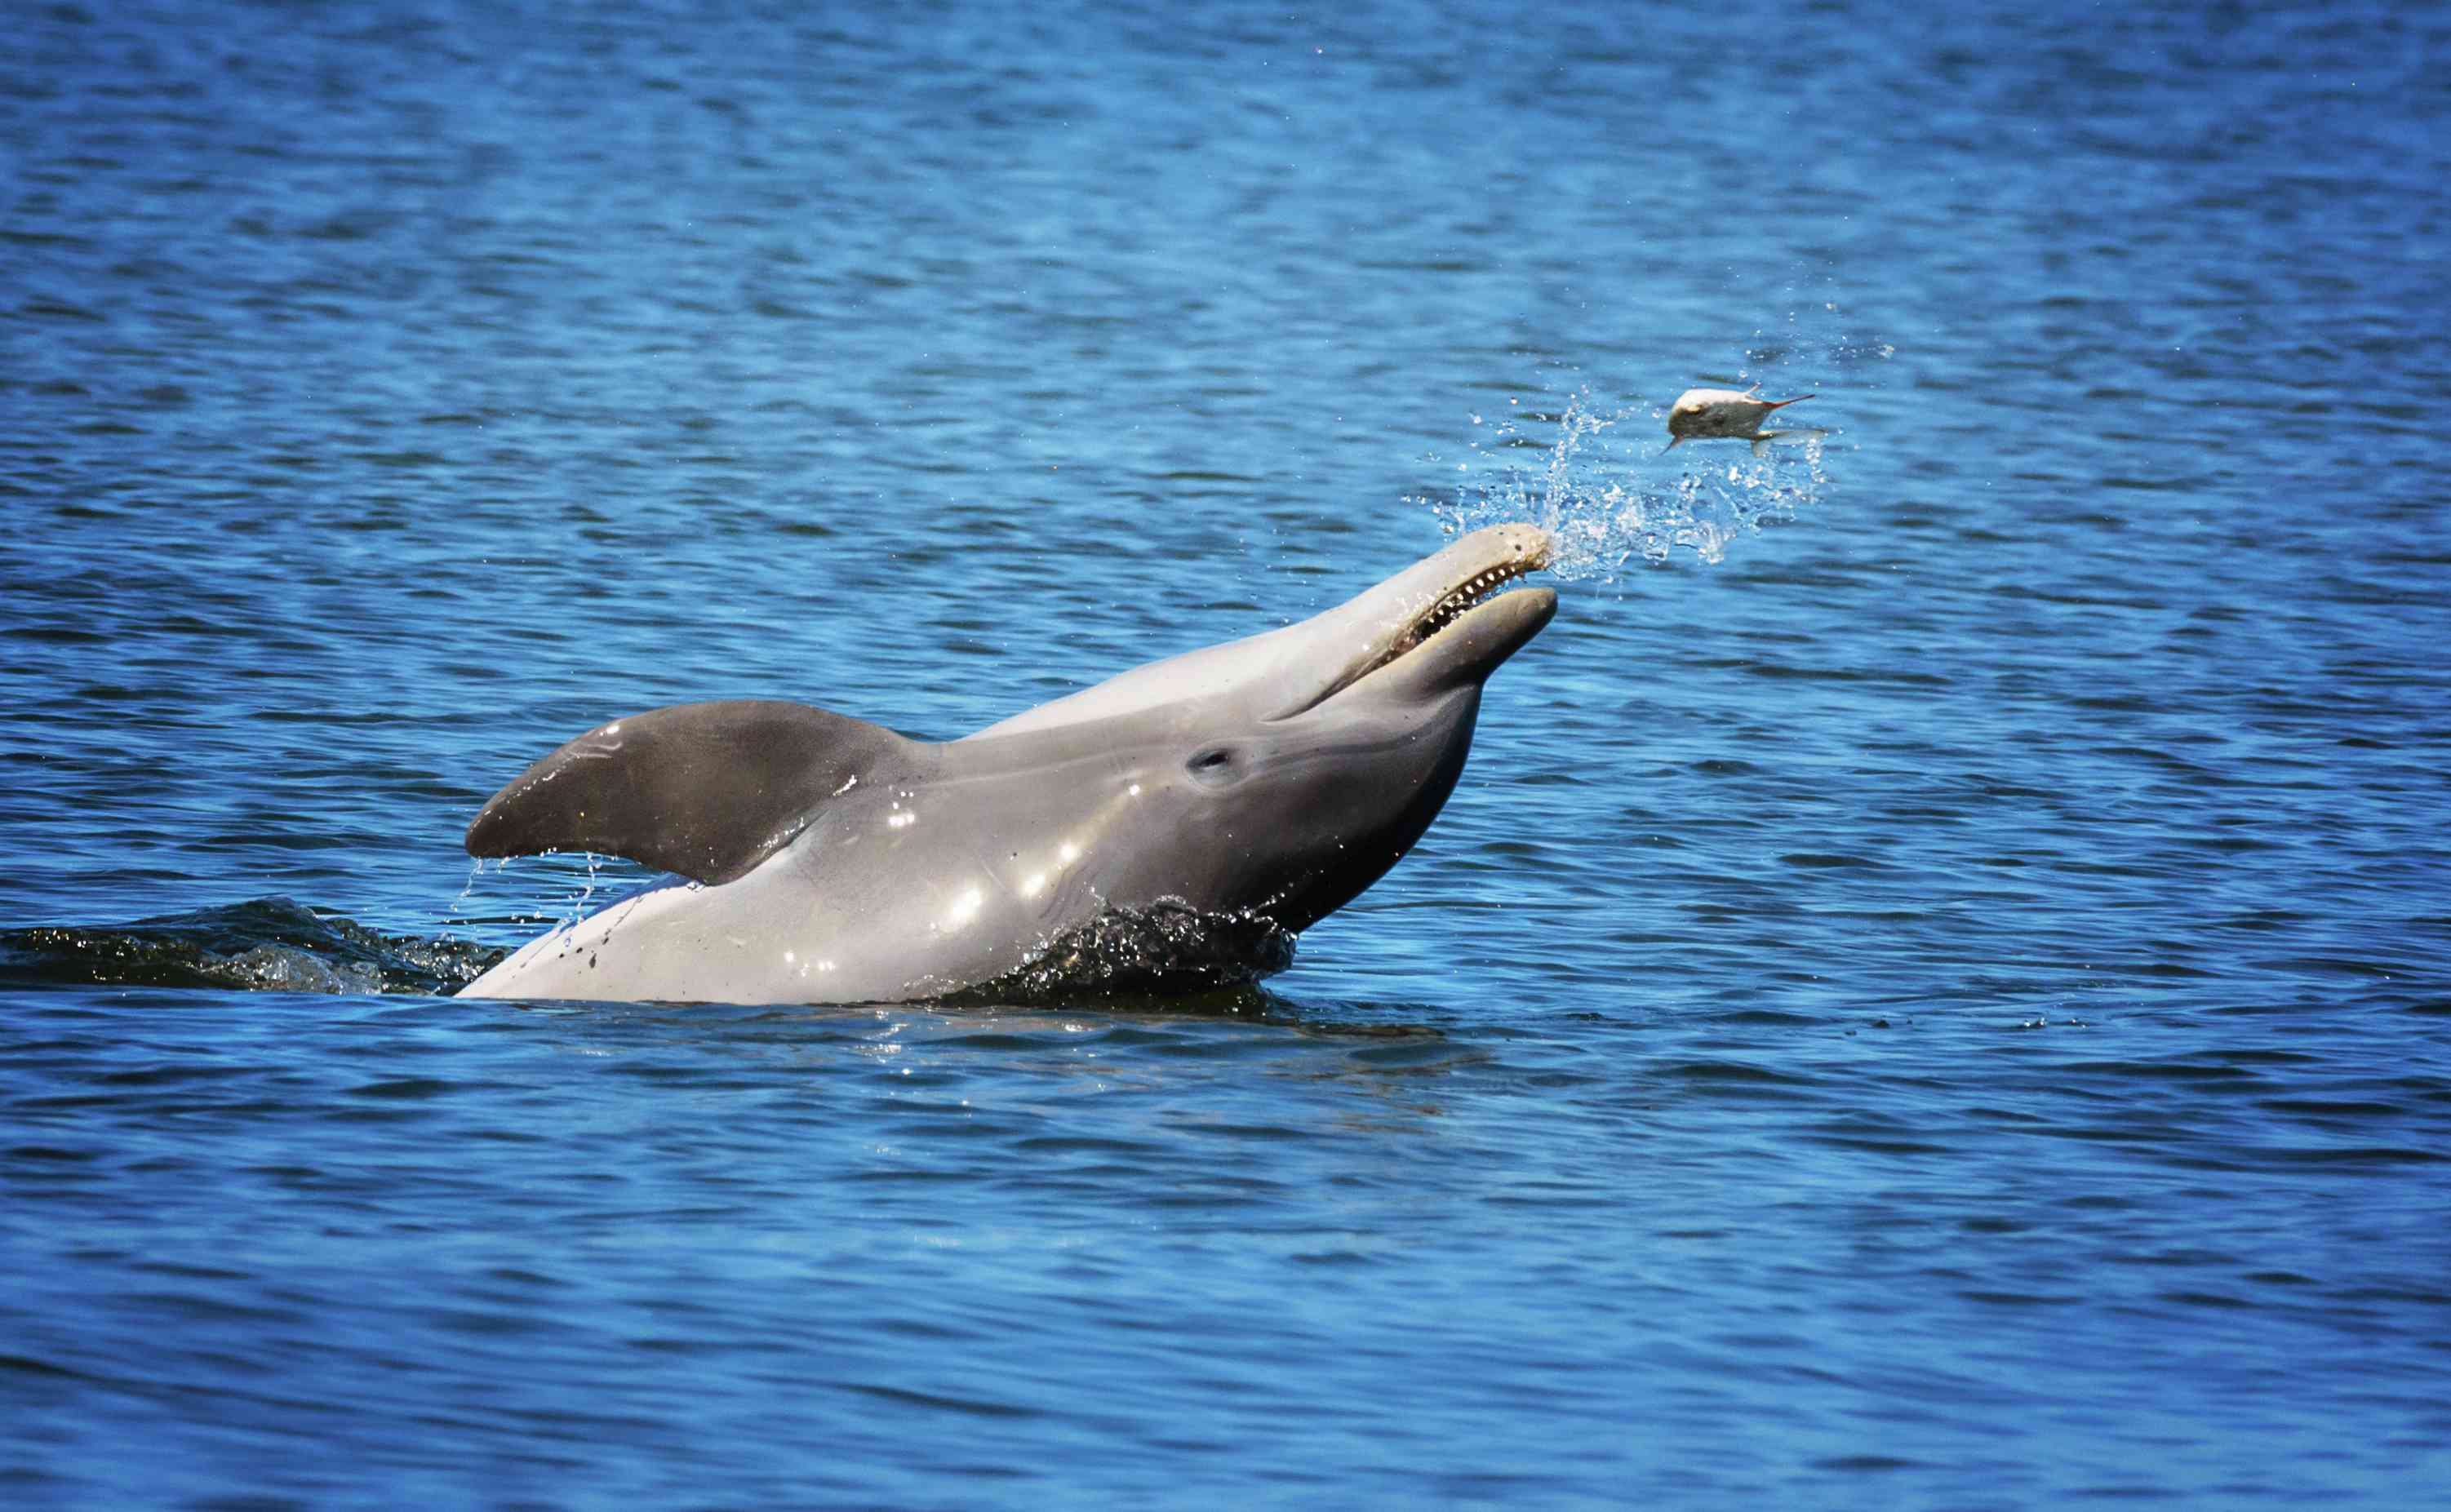 Dolphin tossing a fish